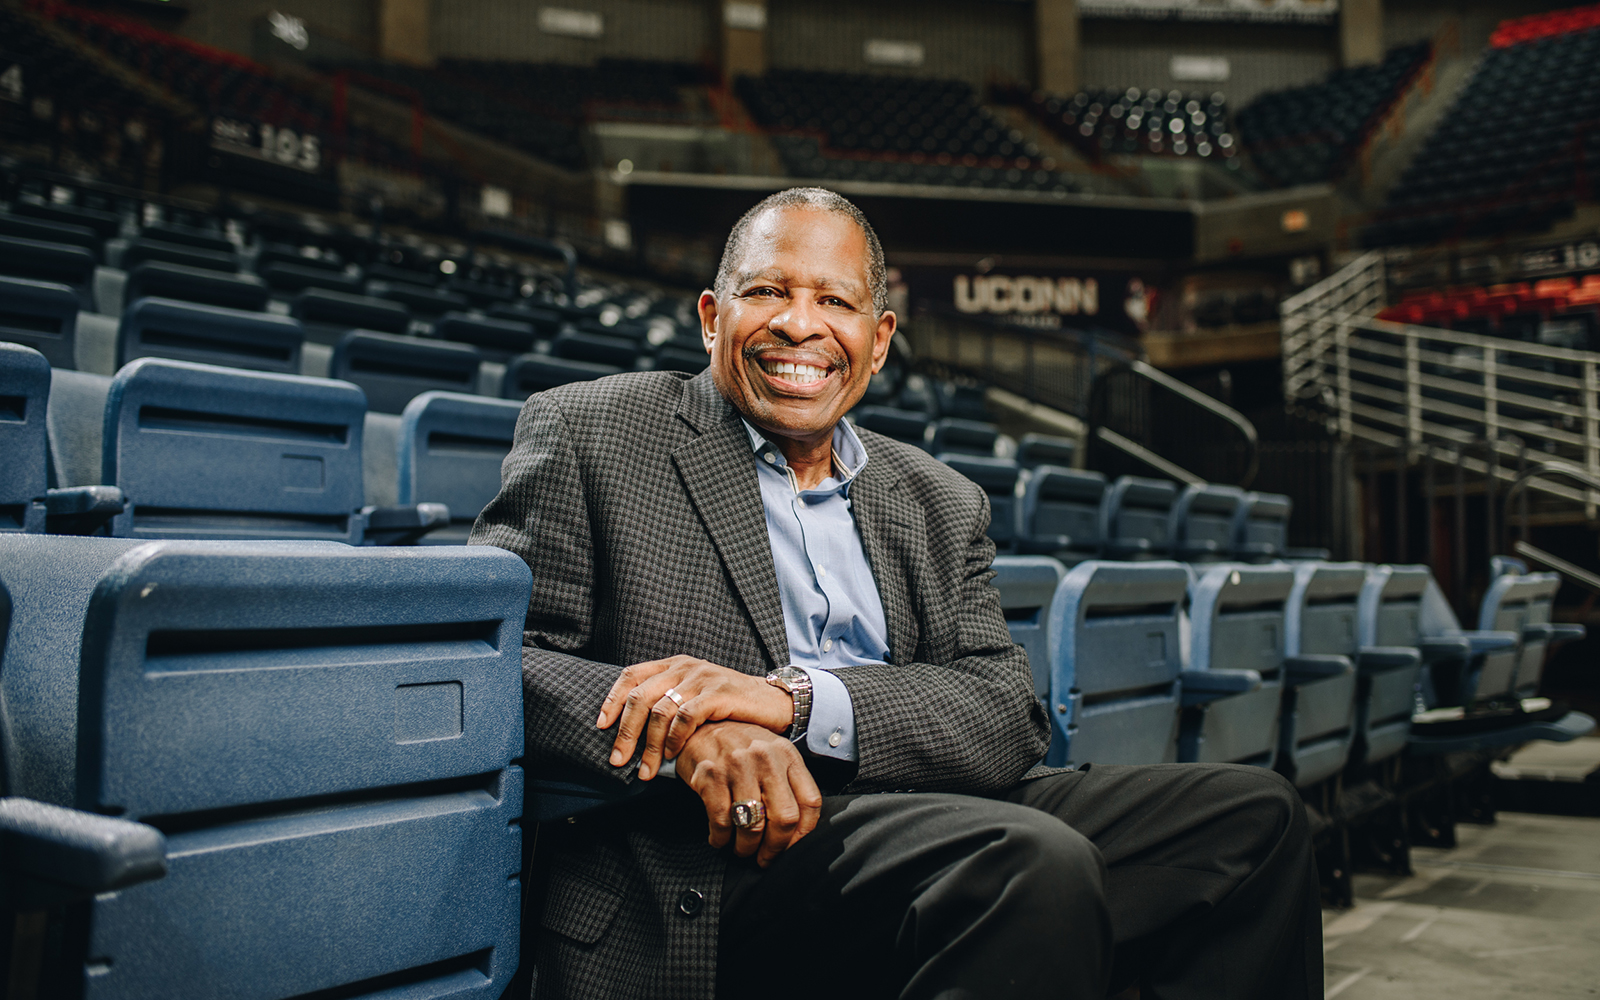 Patrick Harris '70 (BUSN) returned to UConn this week to speak about diversity at the Rosenberg-McVay Business Leadership Luncheon, as well as to address students from UConn's Scholars House. (Nathan Oldham / UConn School of Business)